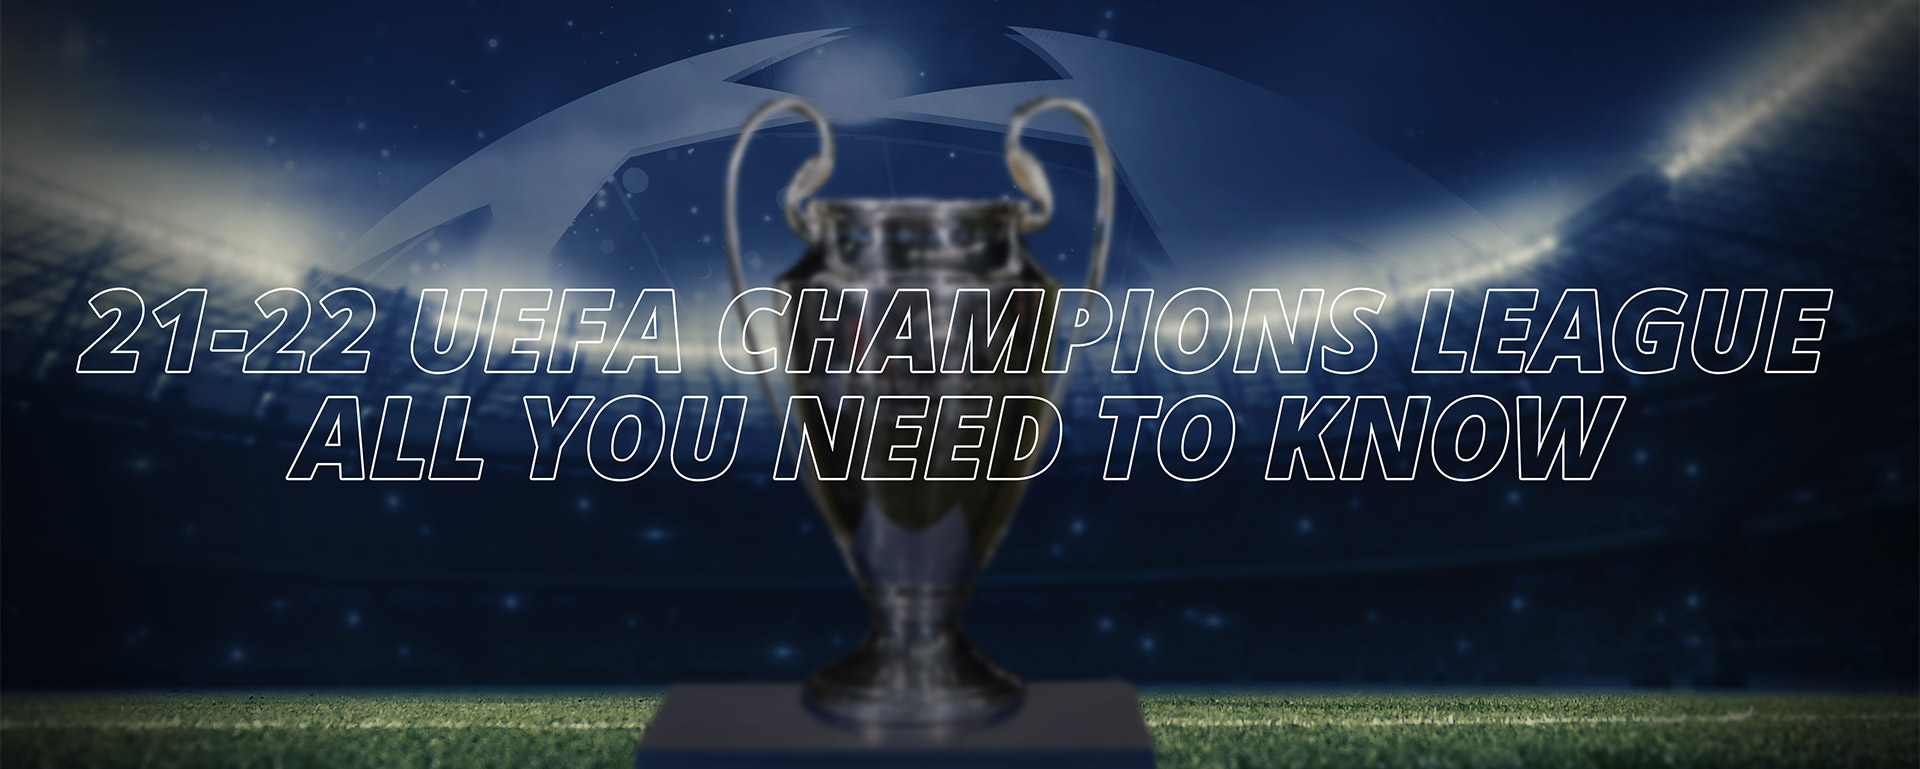 UEFA CHAMPIONS LEAGUE: ALL YOU NEED TO KNOW